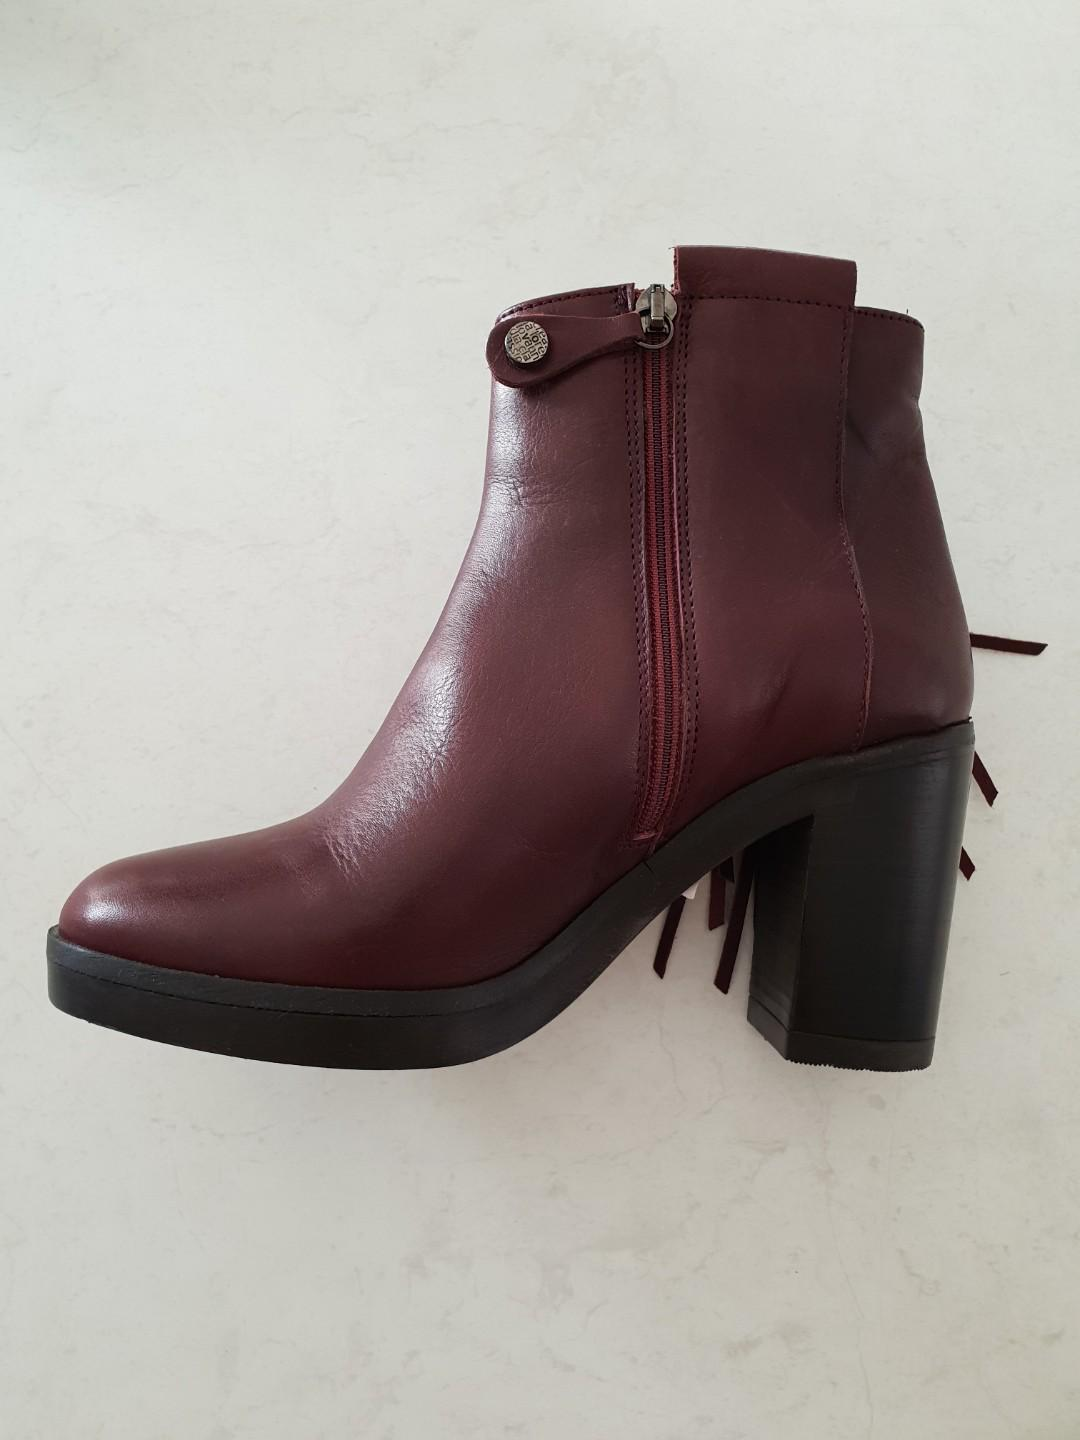 BURGUNDY BOOTS | SIZE 36